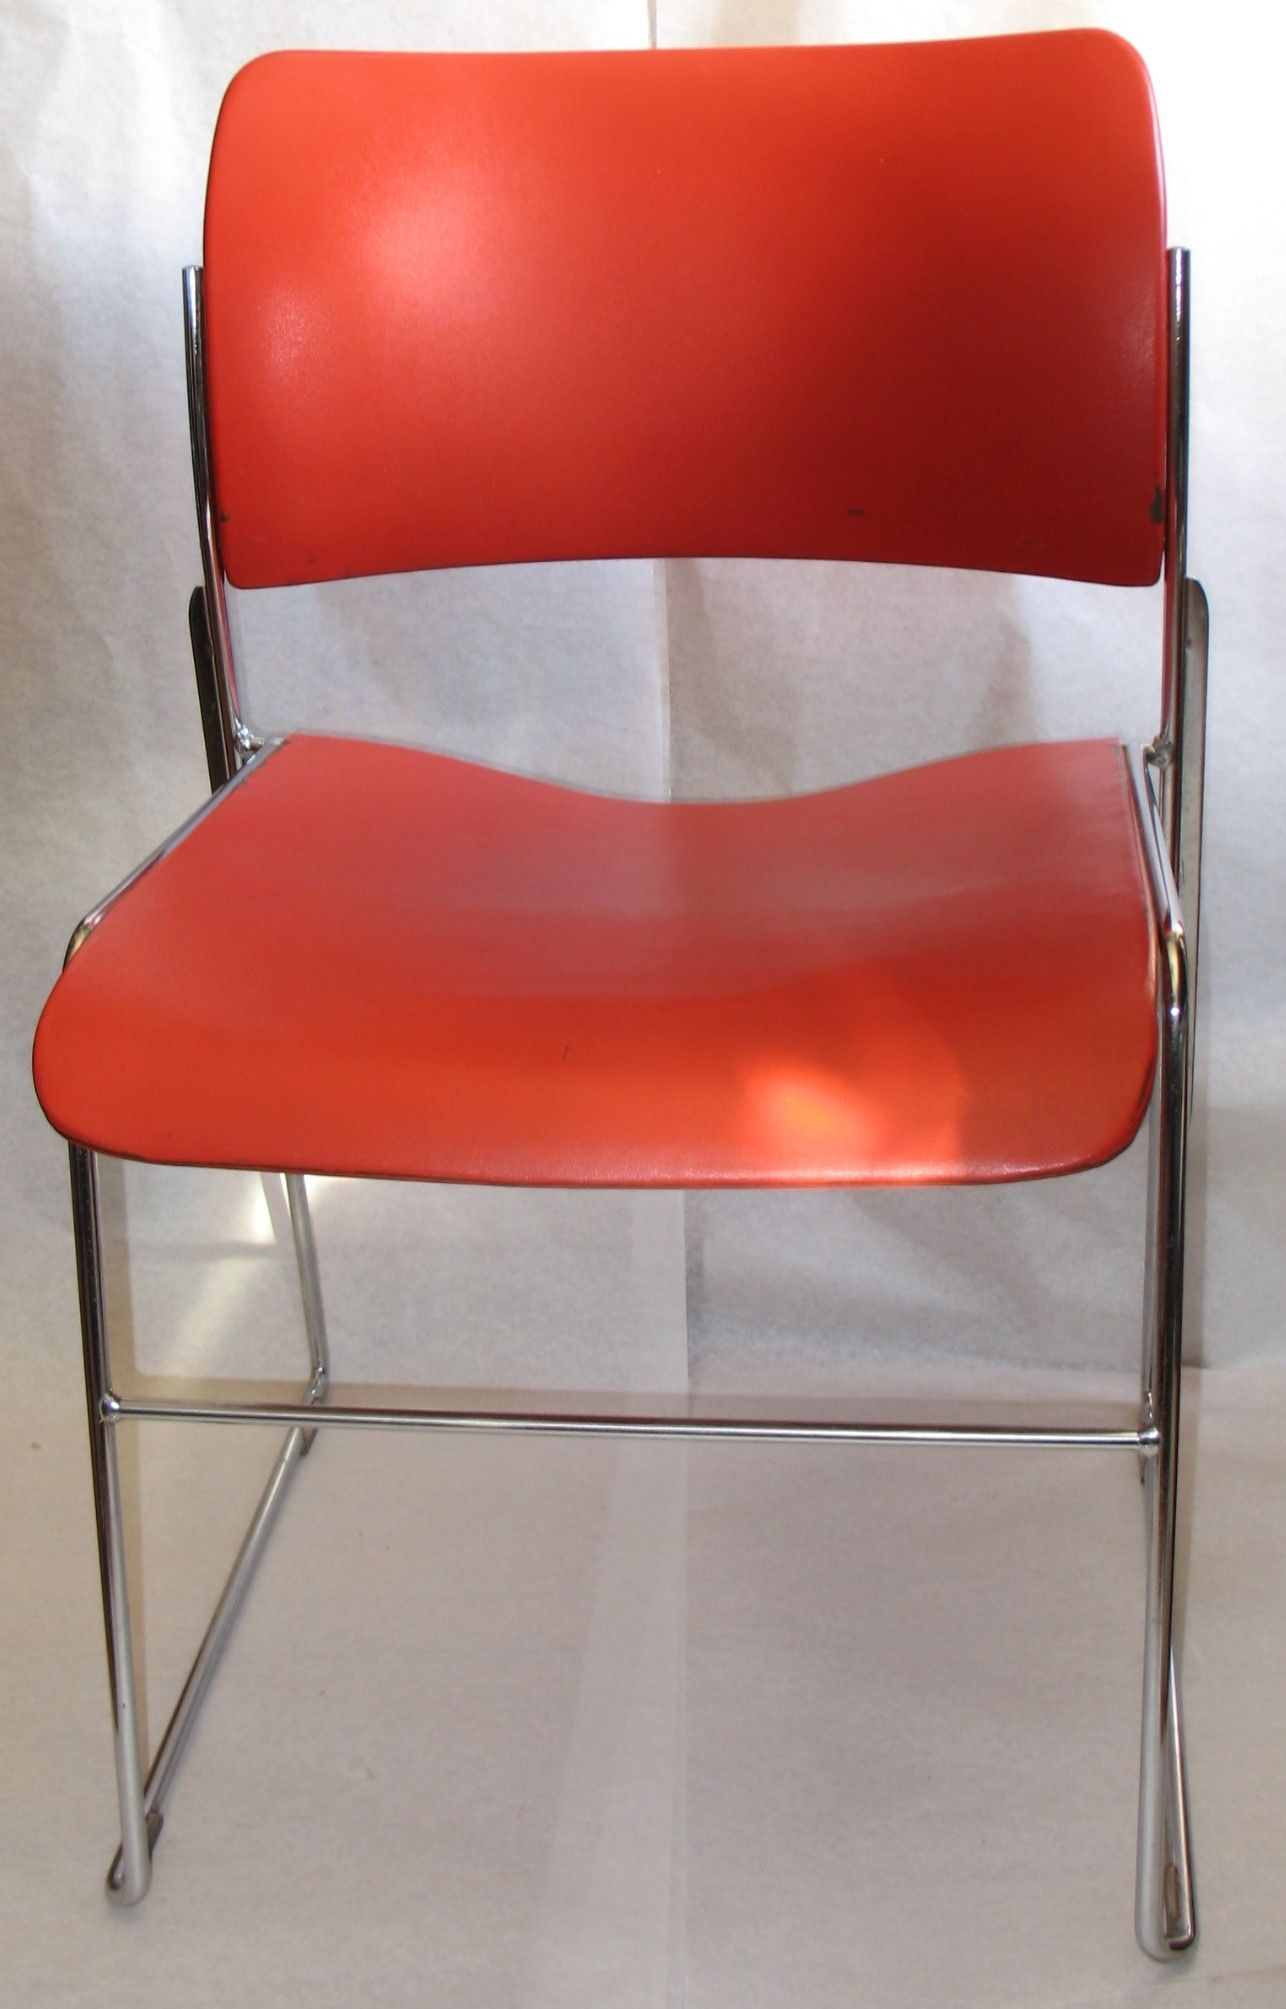 David Rowland Metal Chair Grey Bedroom Uk 1964 Vintage Objects Stackable